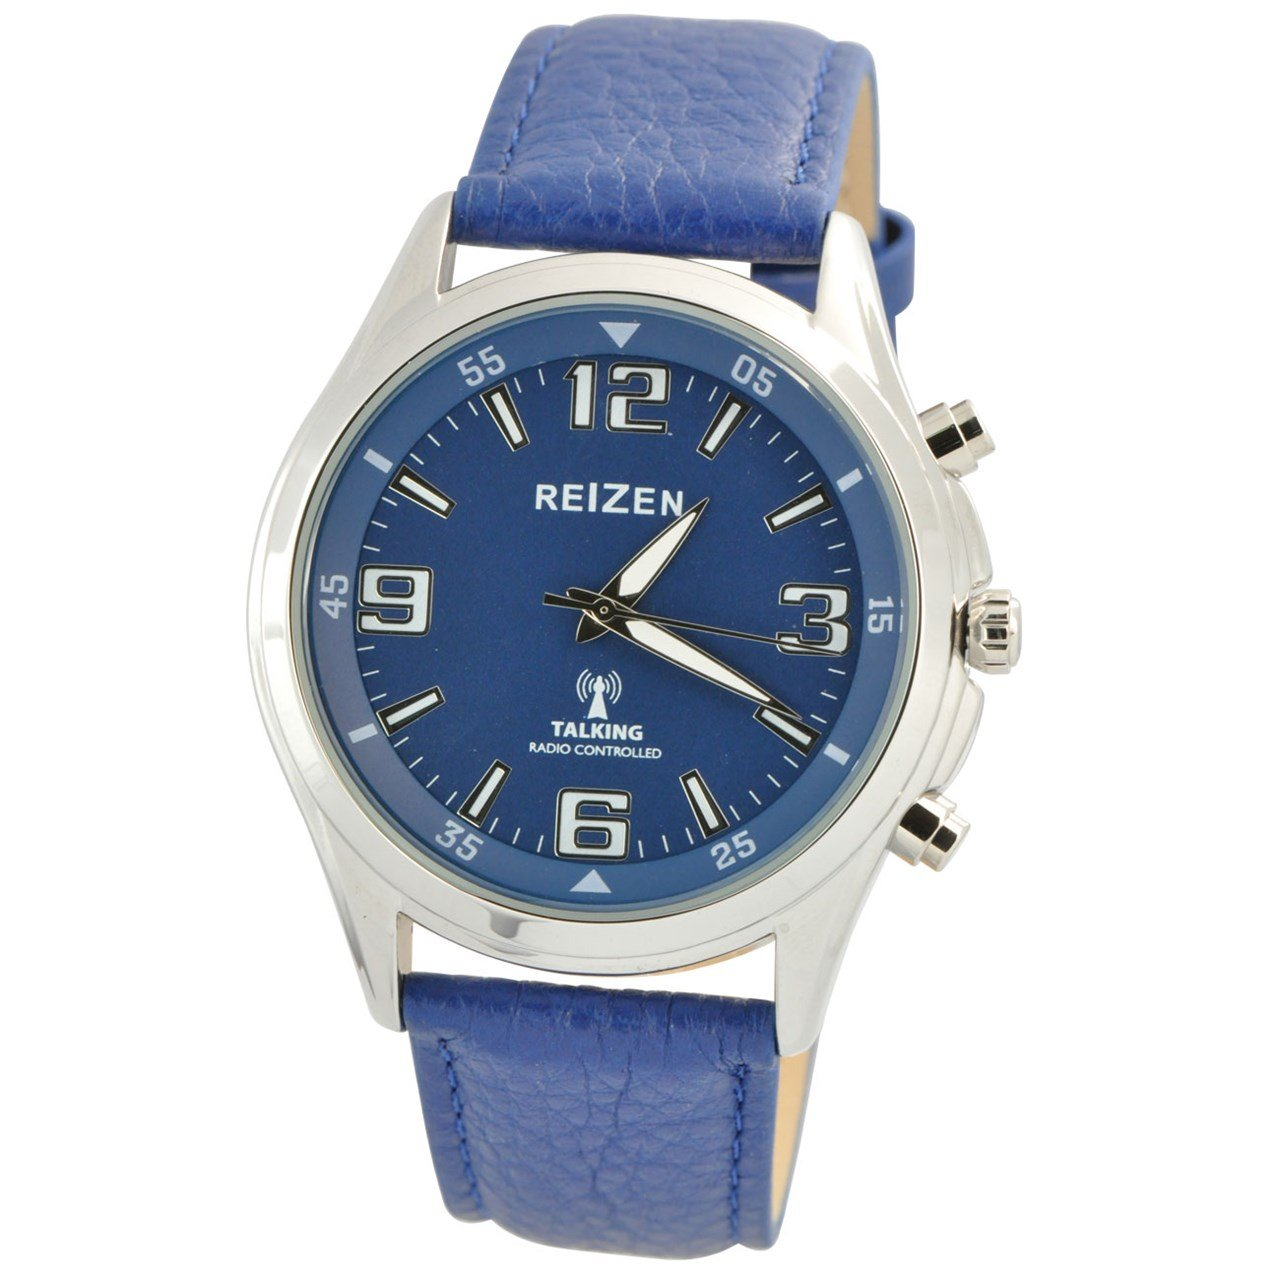 Reizen Talking Atomic Blue Dial Chrome Watch - Blue Leather Band